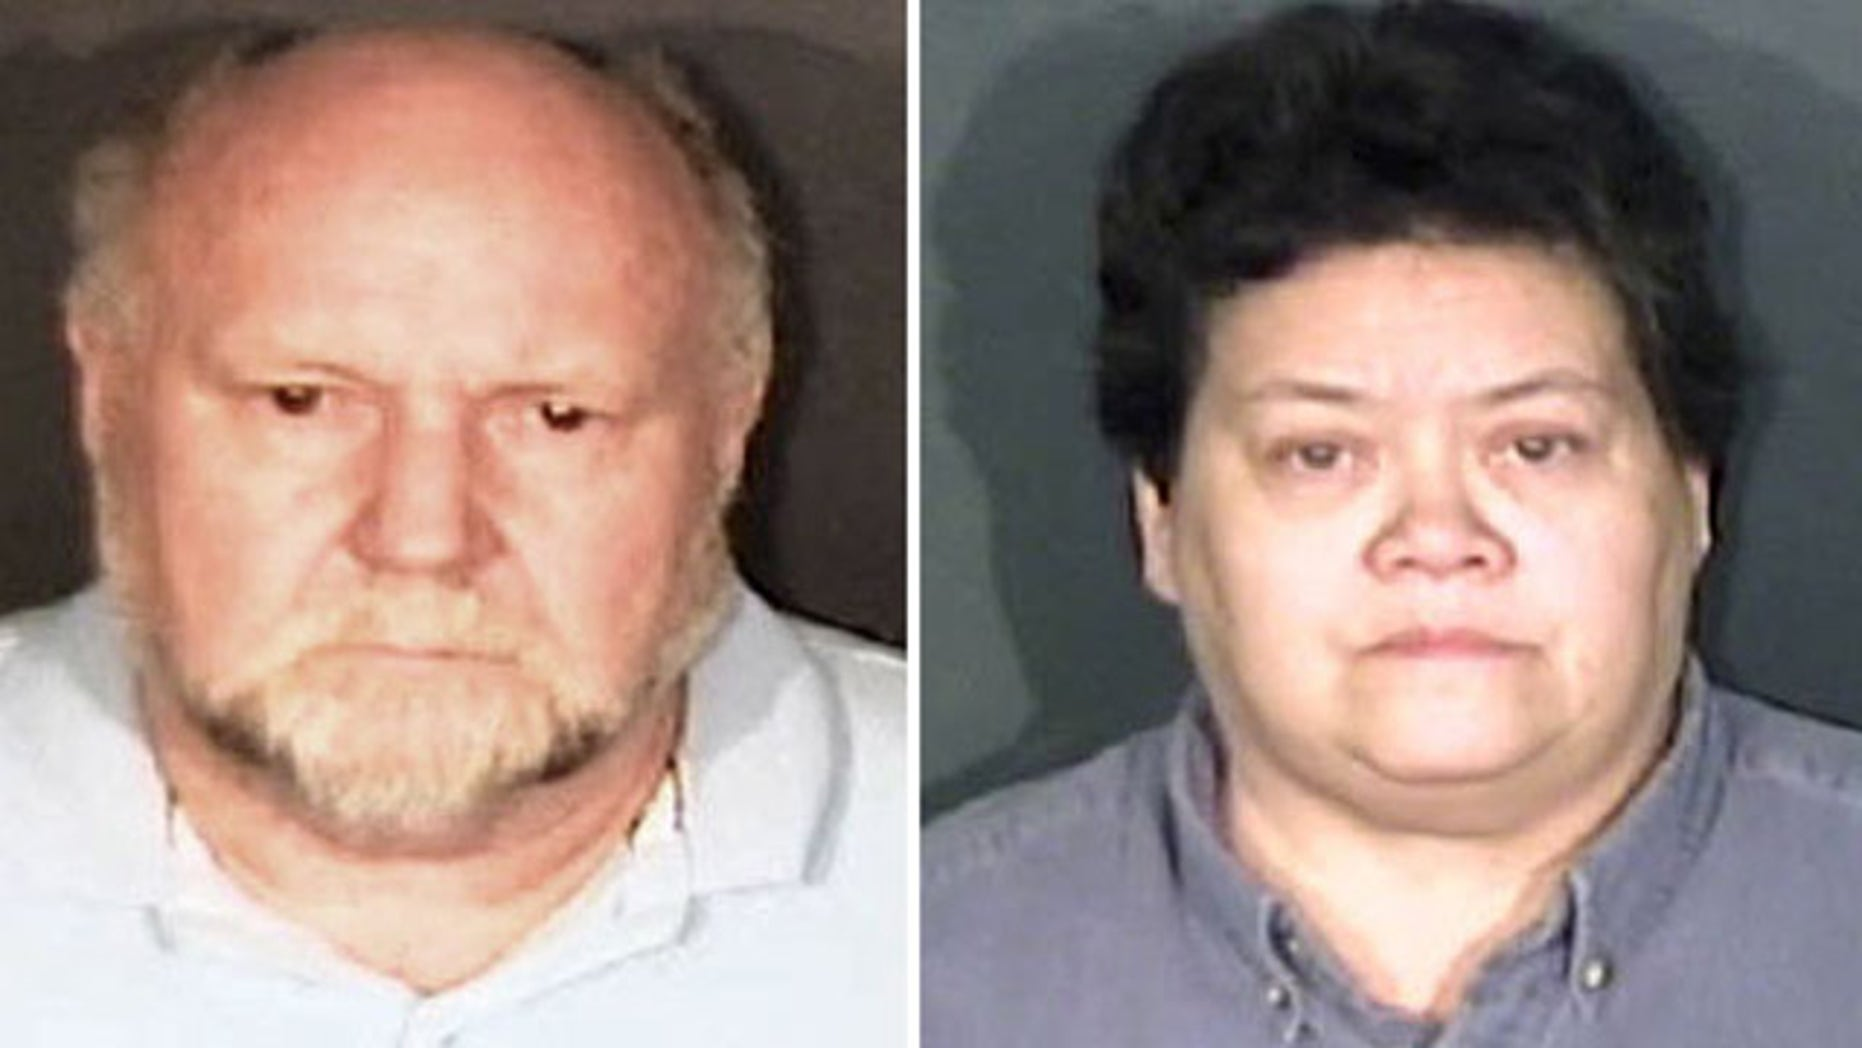 Fifty-eight-year-old Edward Bryant and 54-year-old Linda Bryant, the boys' adoptive parents, are being held in the El Paso County jail on $1 million bail each.